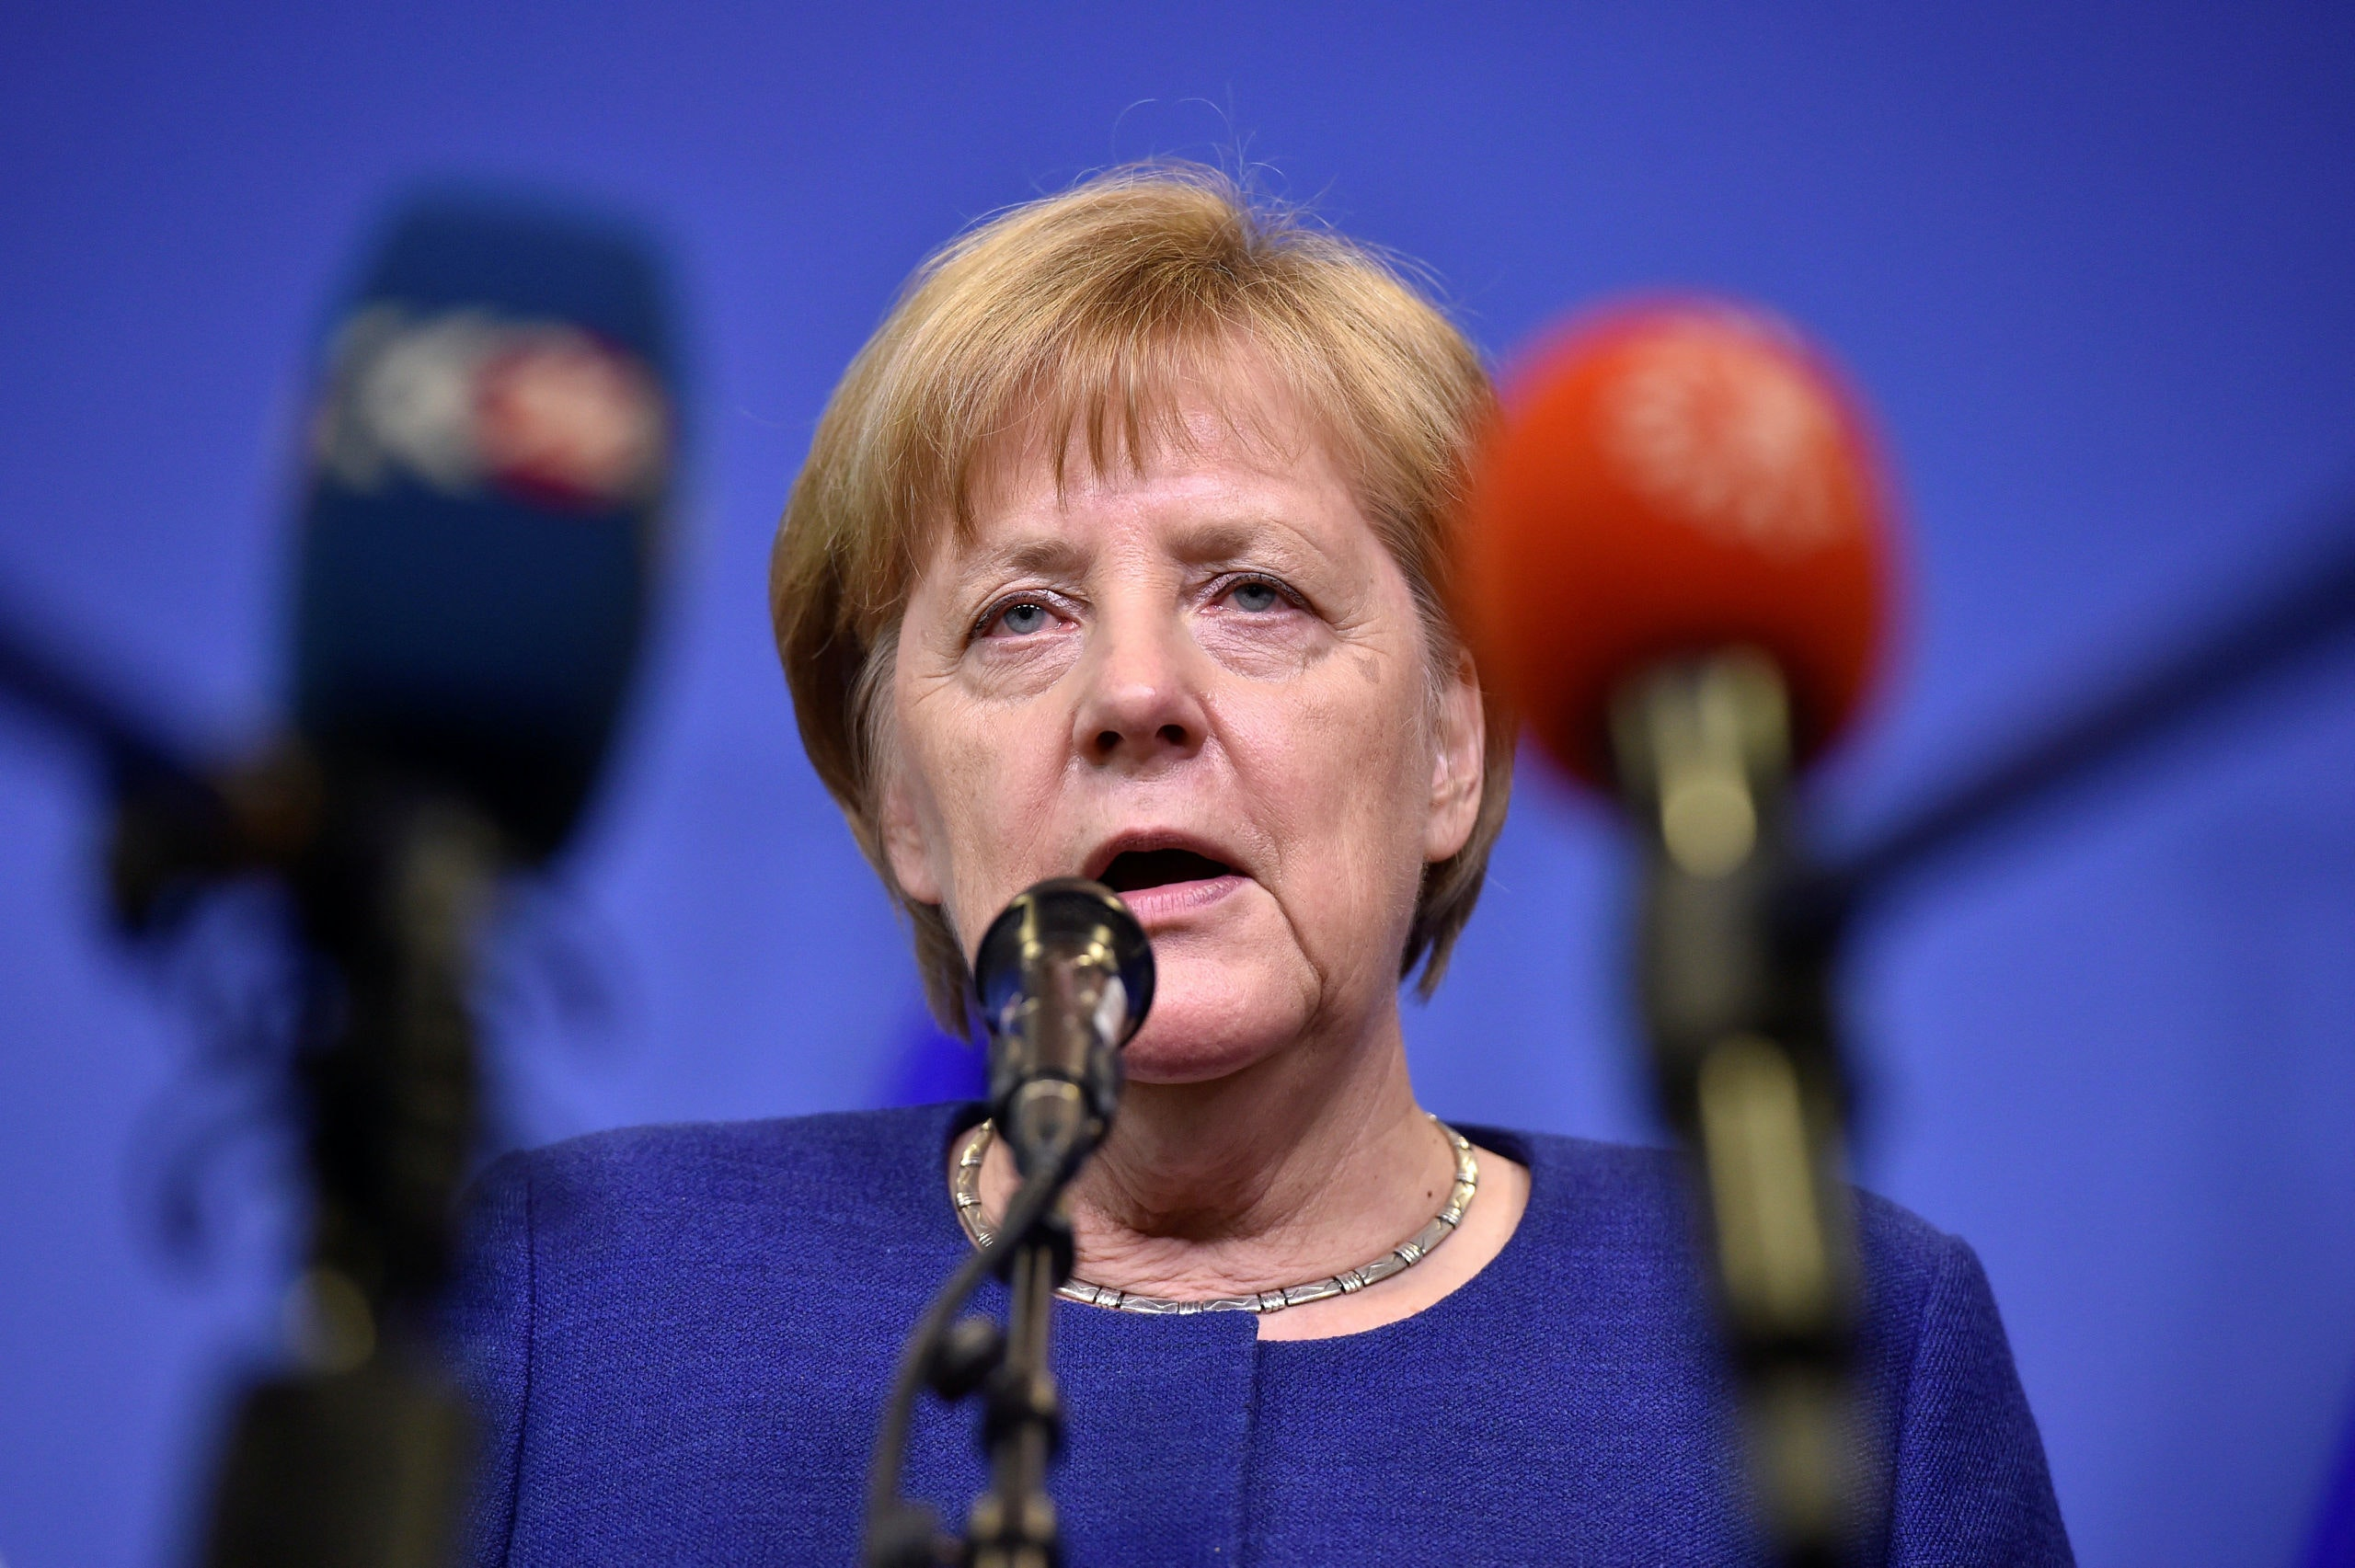 German Chancellor Angela Merkel talks to the press after an emergency European Union leaders summit on immigration at the EU Commission headquarters in Brussels, Belgium June 24, 2018. REUTERS/Eric Vidal